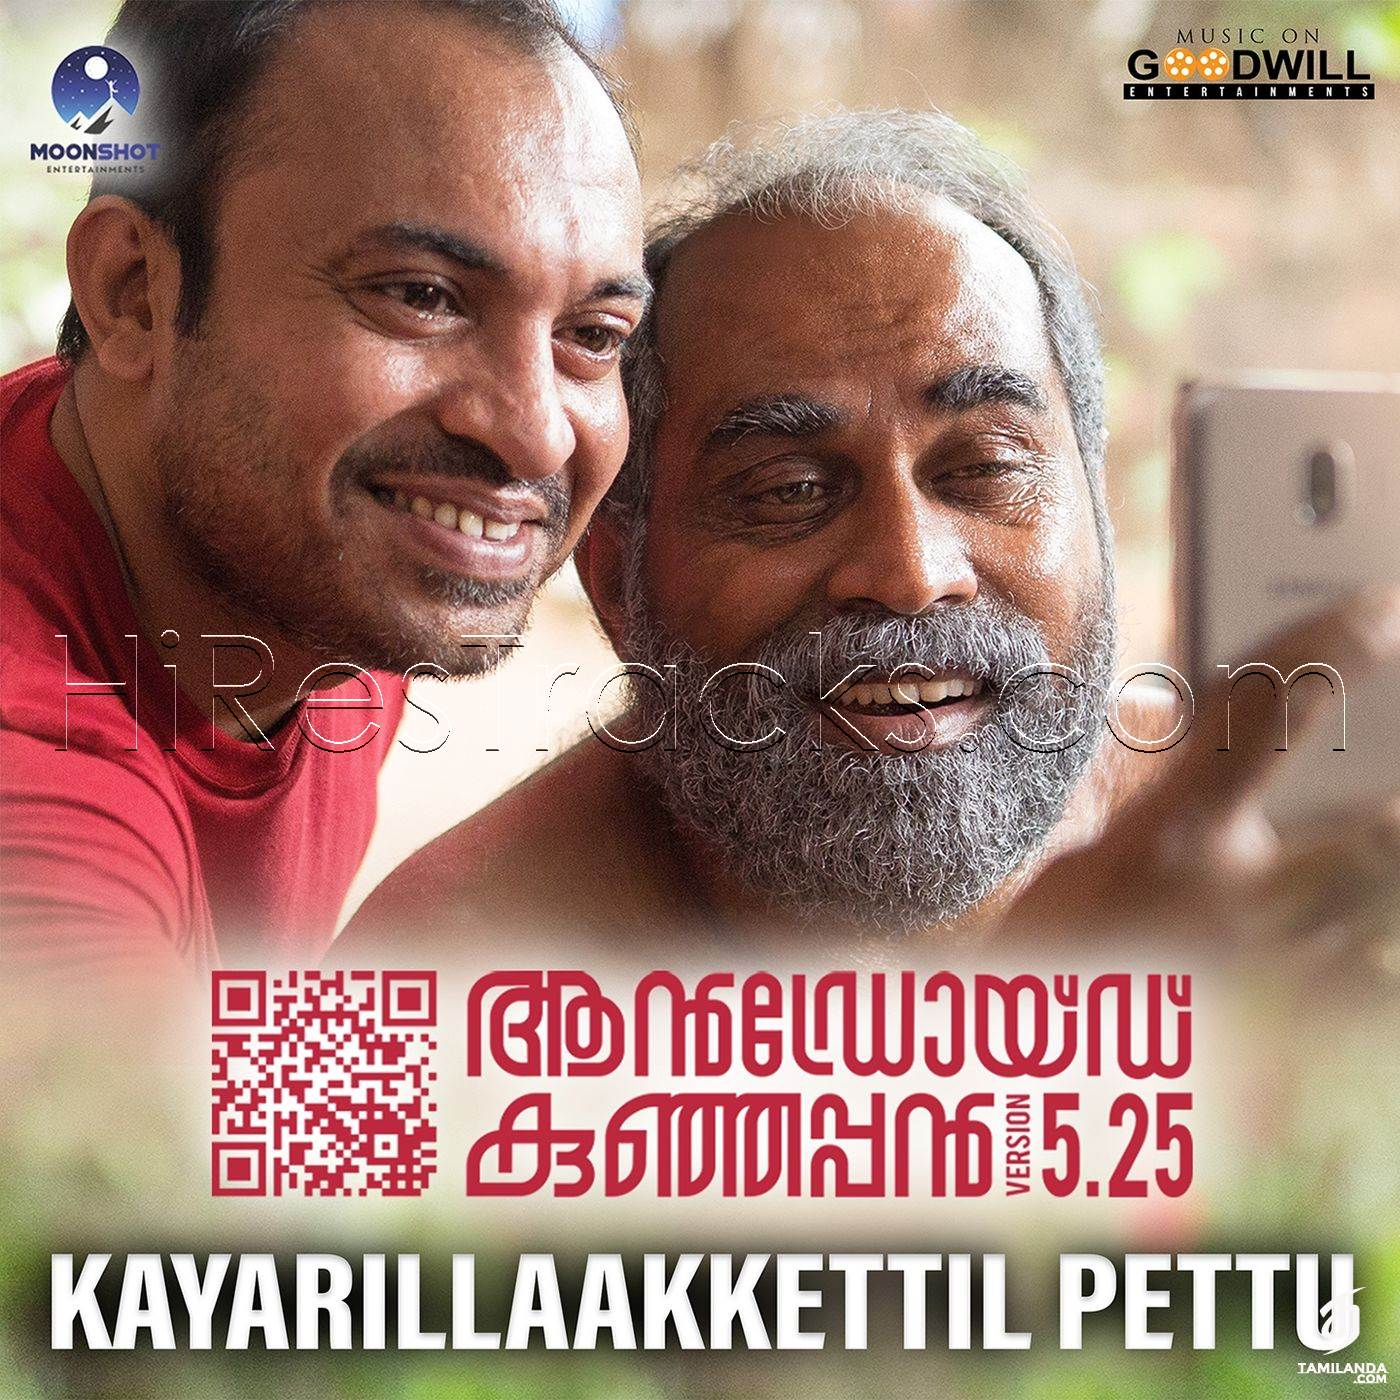 Kayarillaakkettil Pettu (From Android Kunjappan Version 5.25) (2019) (Bijibal) (Goodwill Entertainments) [Digital-DL-FLAC]